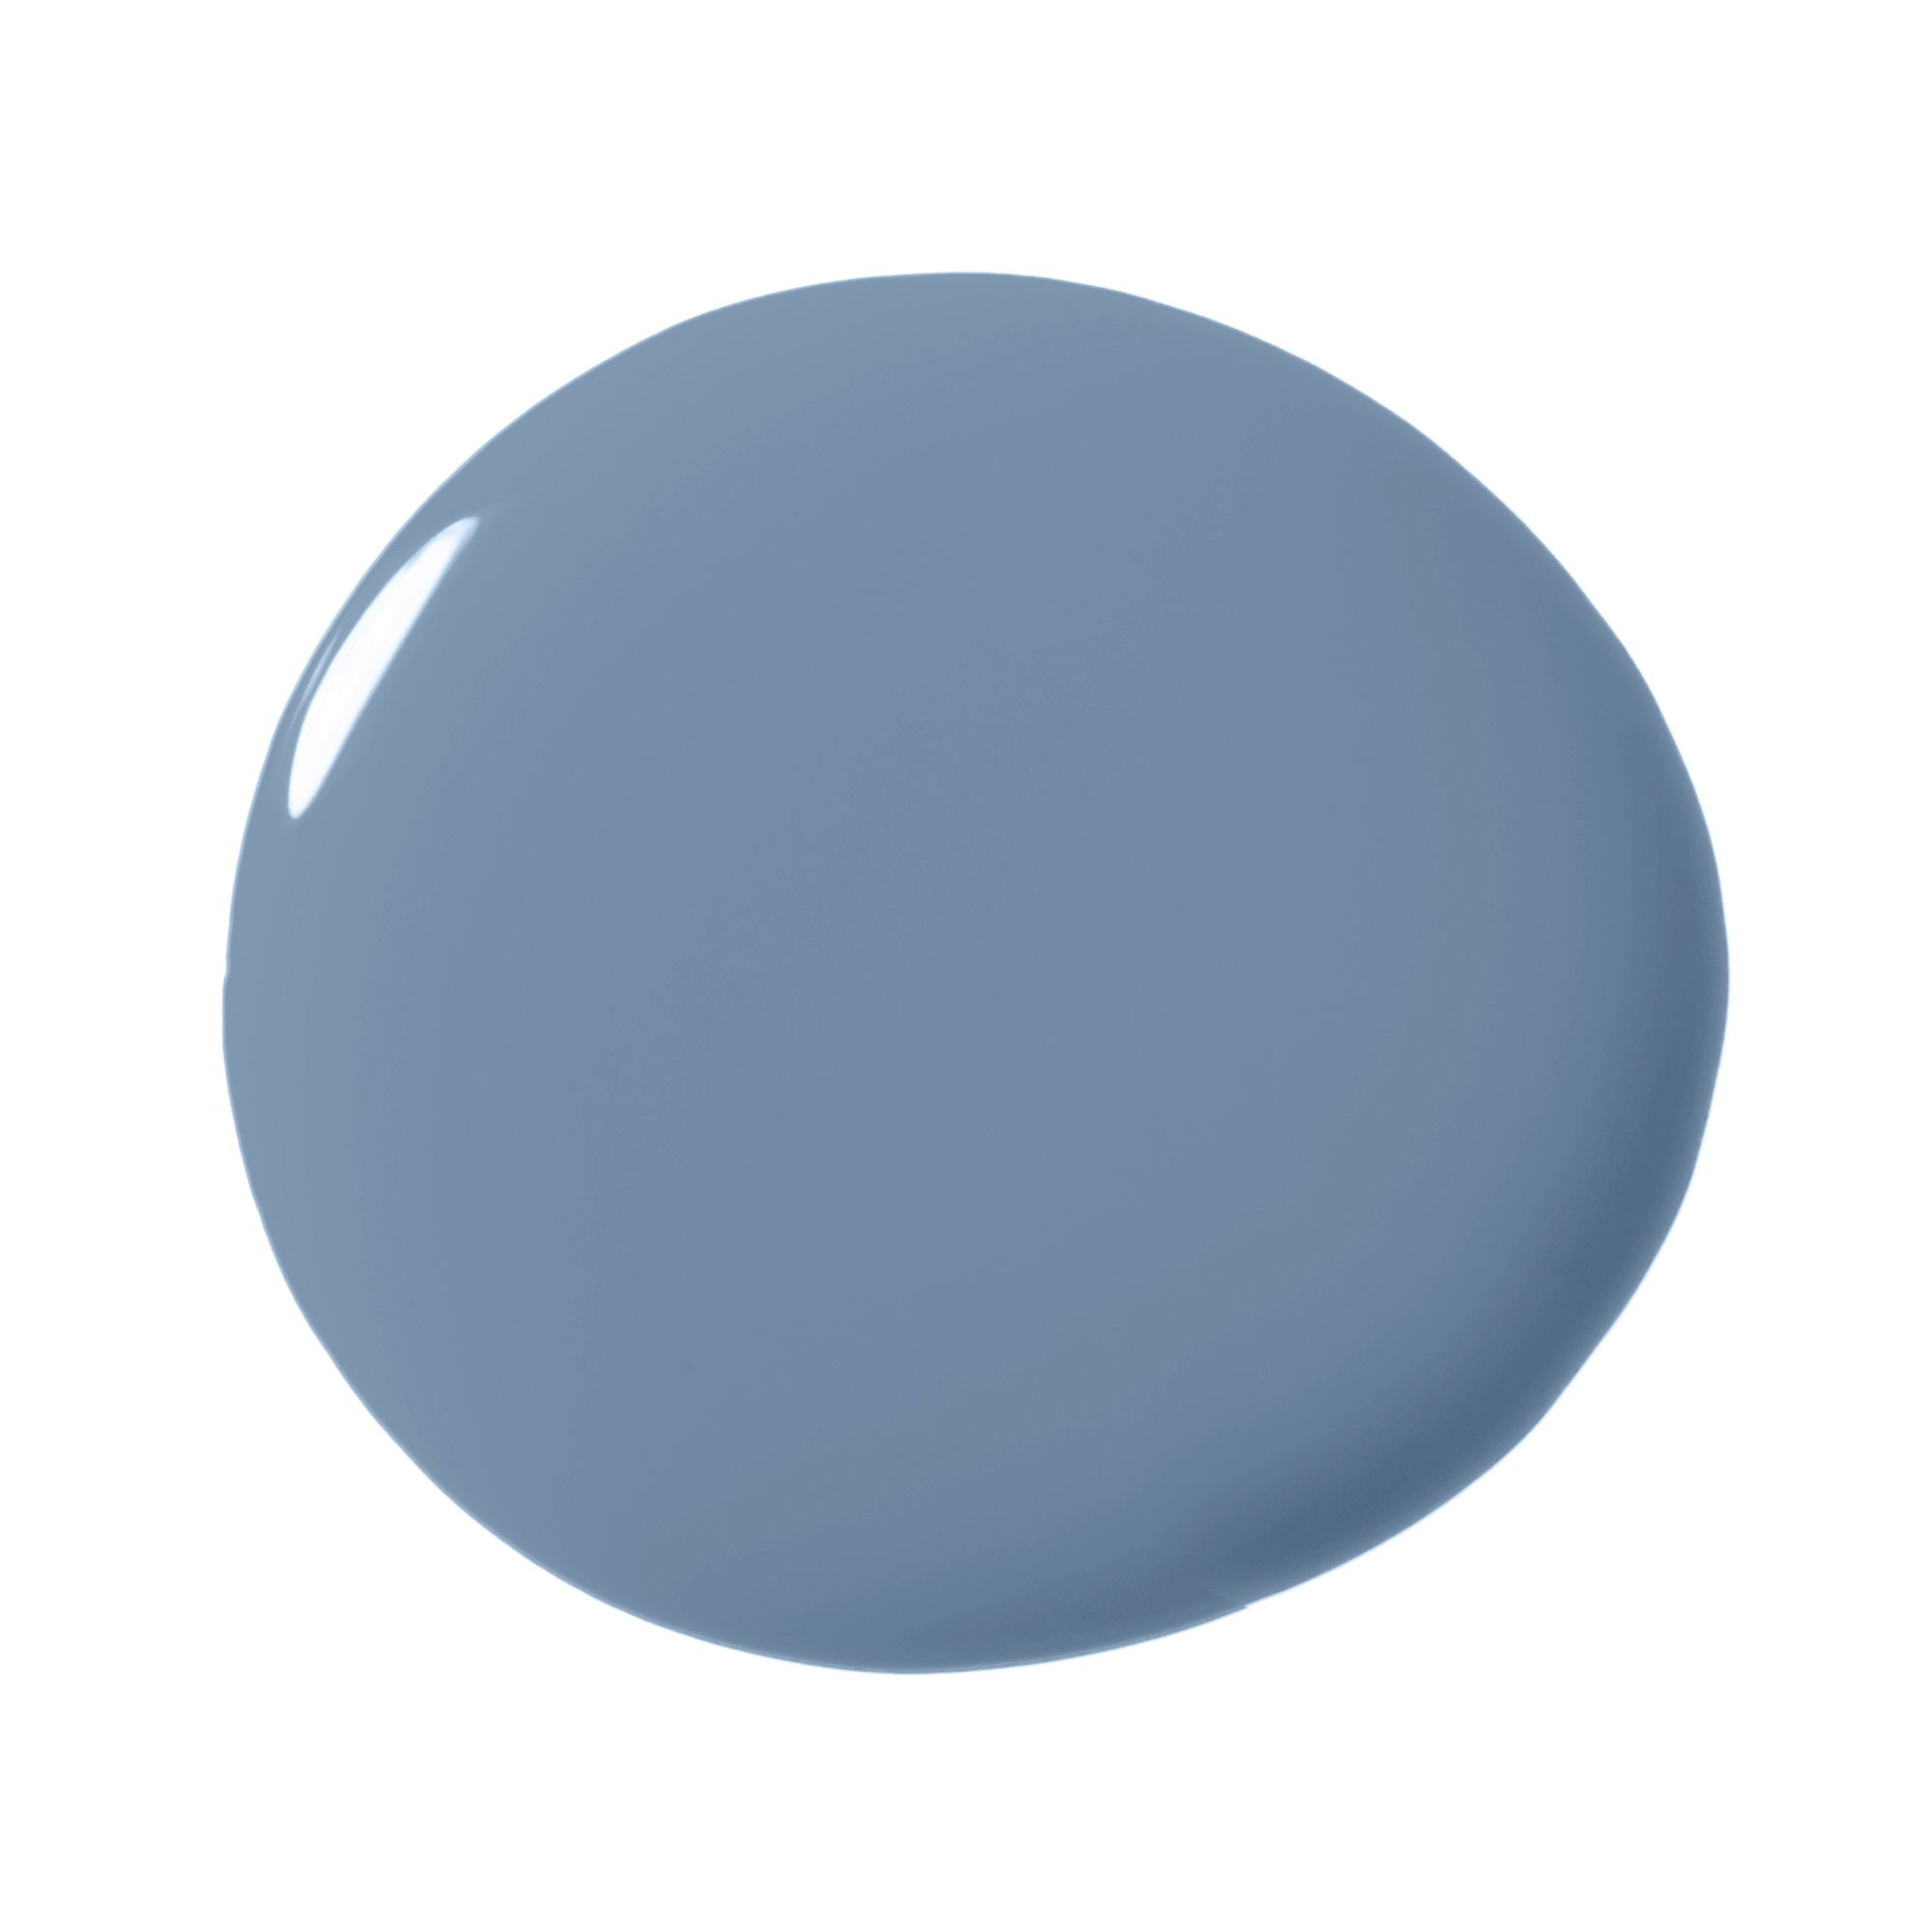 Designers Say These Are The Best Kitchen Paint Colors